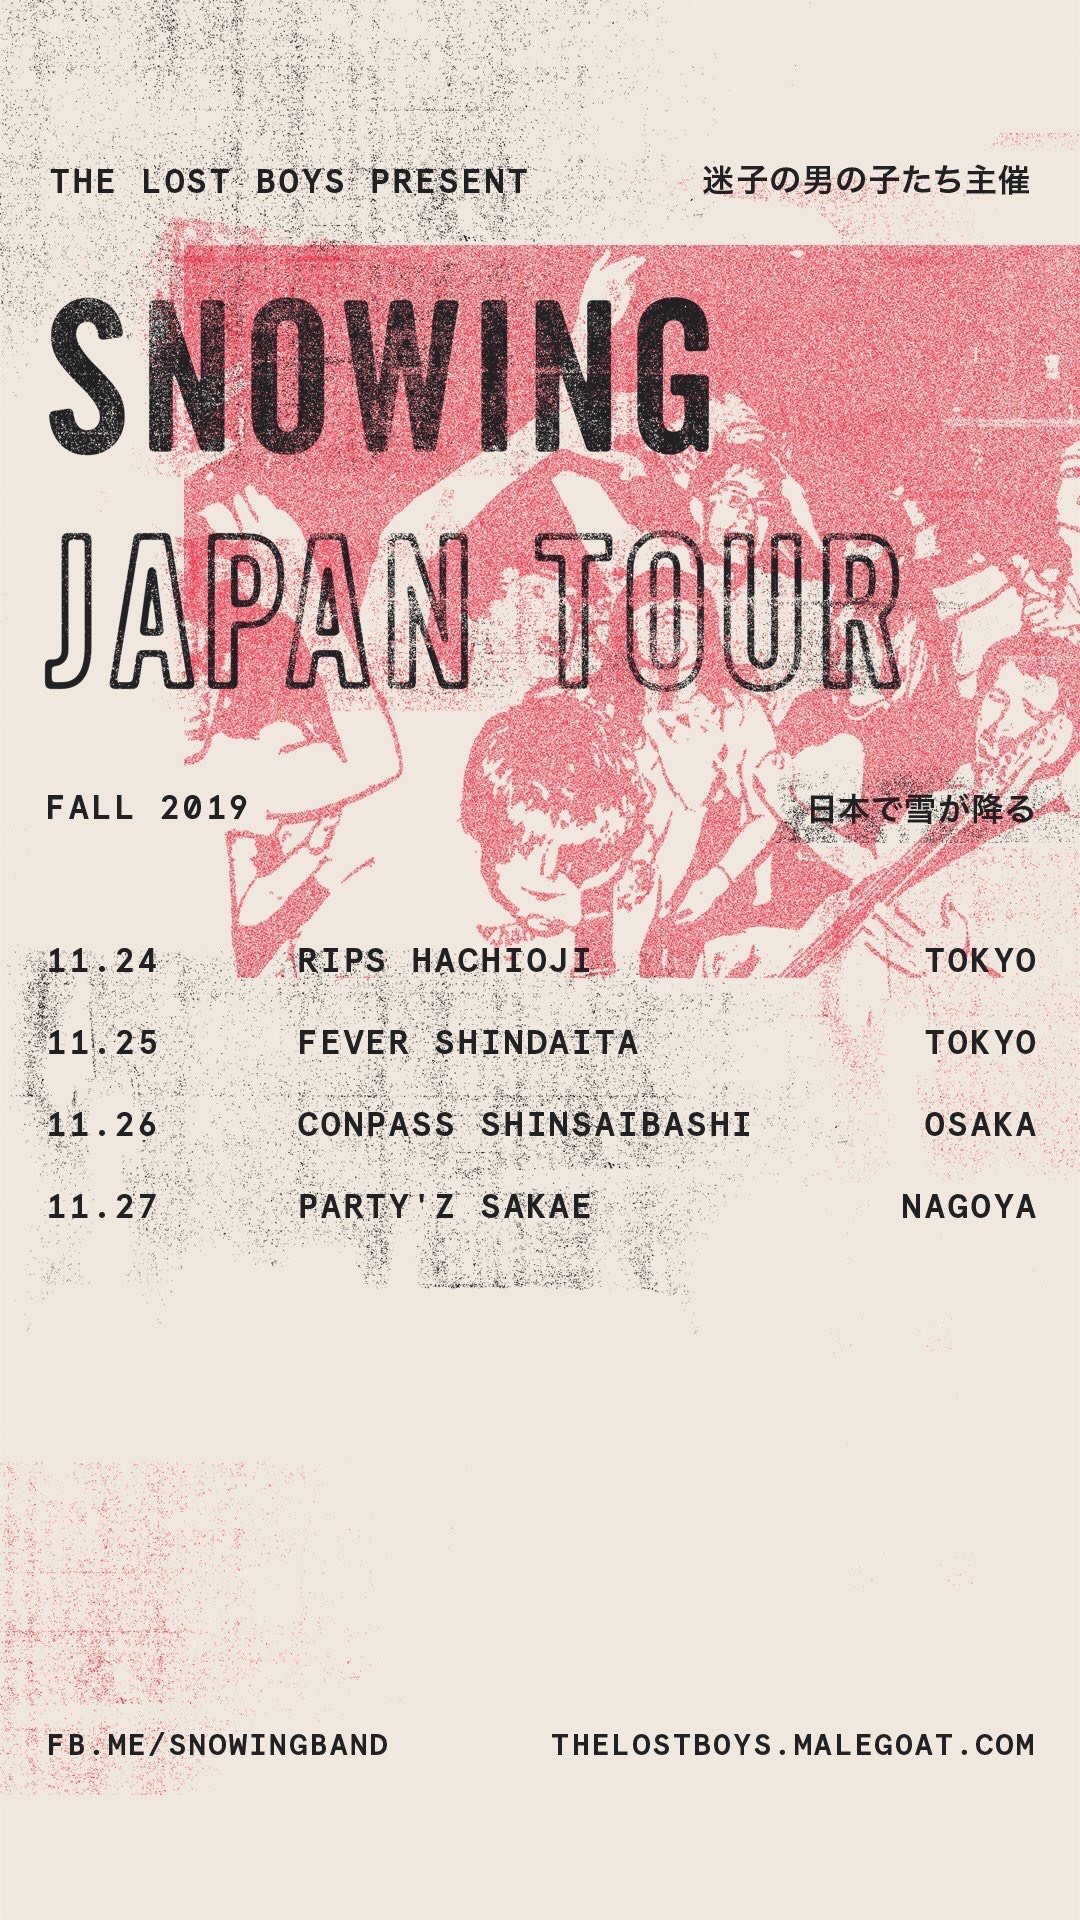 The Lost Boys presents Snowing Japan Tour 2019